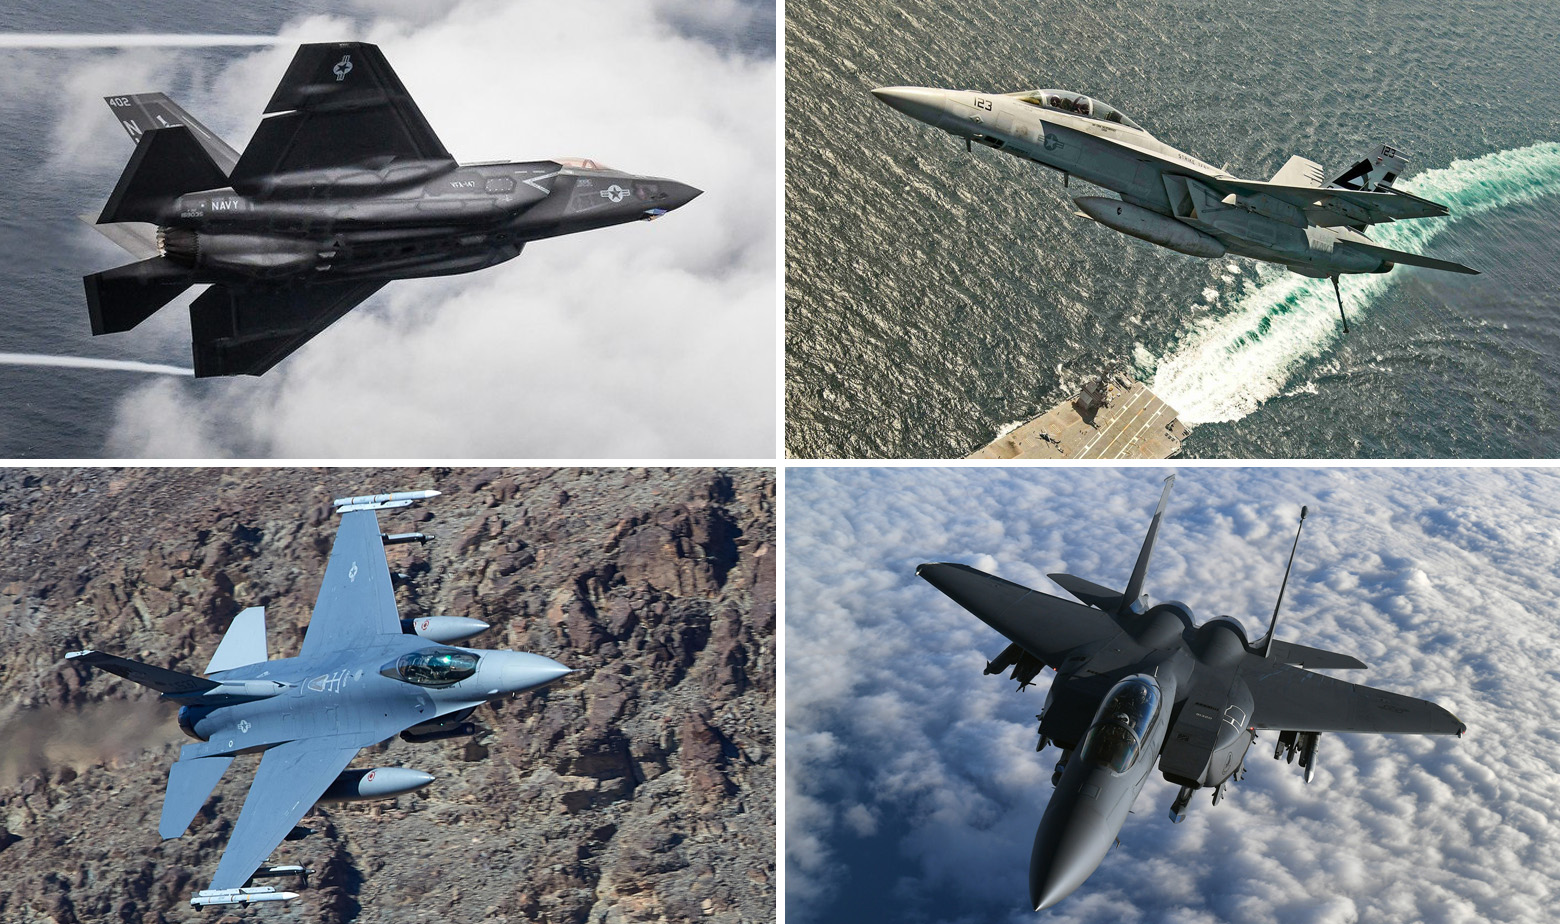 F-35C, F/A-18 Super Hornet, F-16 Falcon i F-15 Strike Eagle